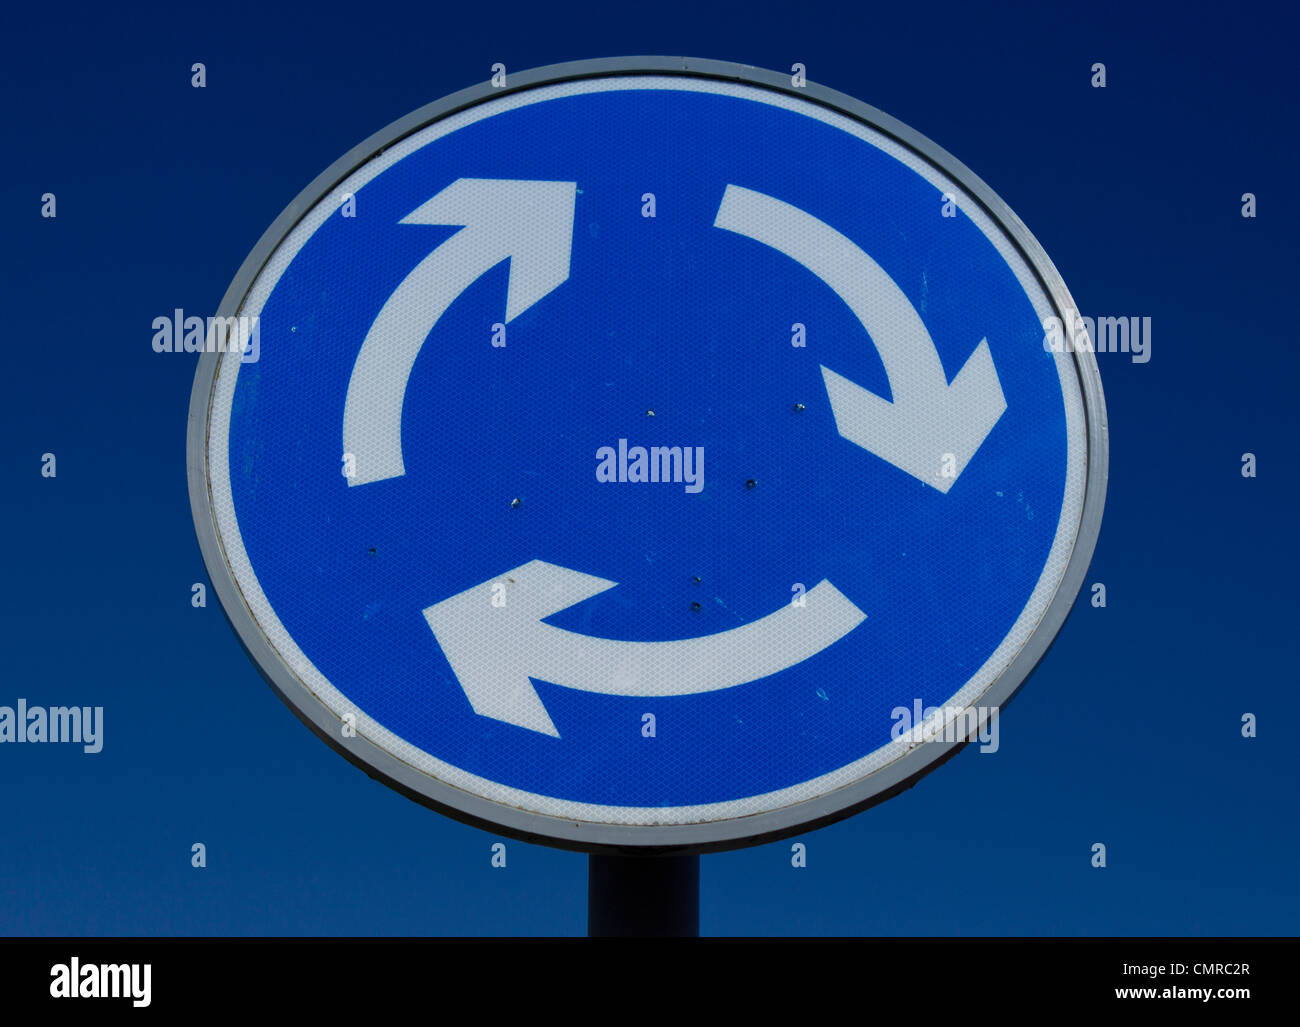 Rond-point street sign Photo Stock